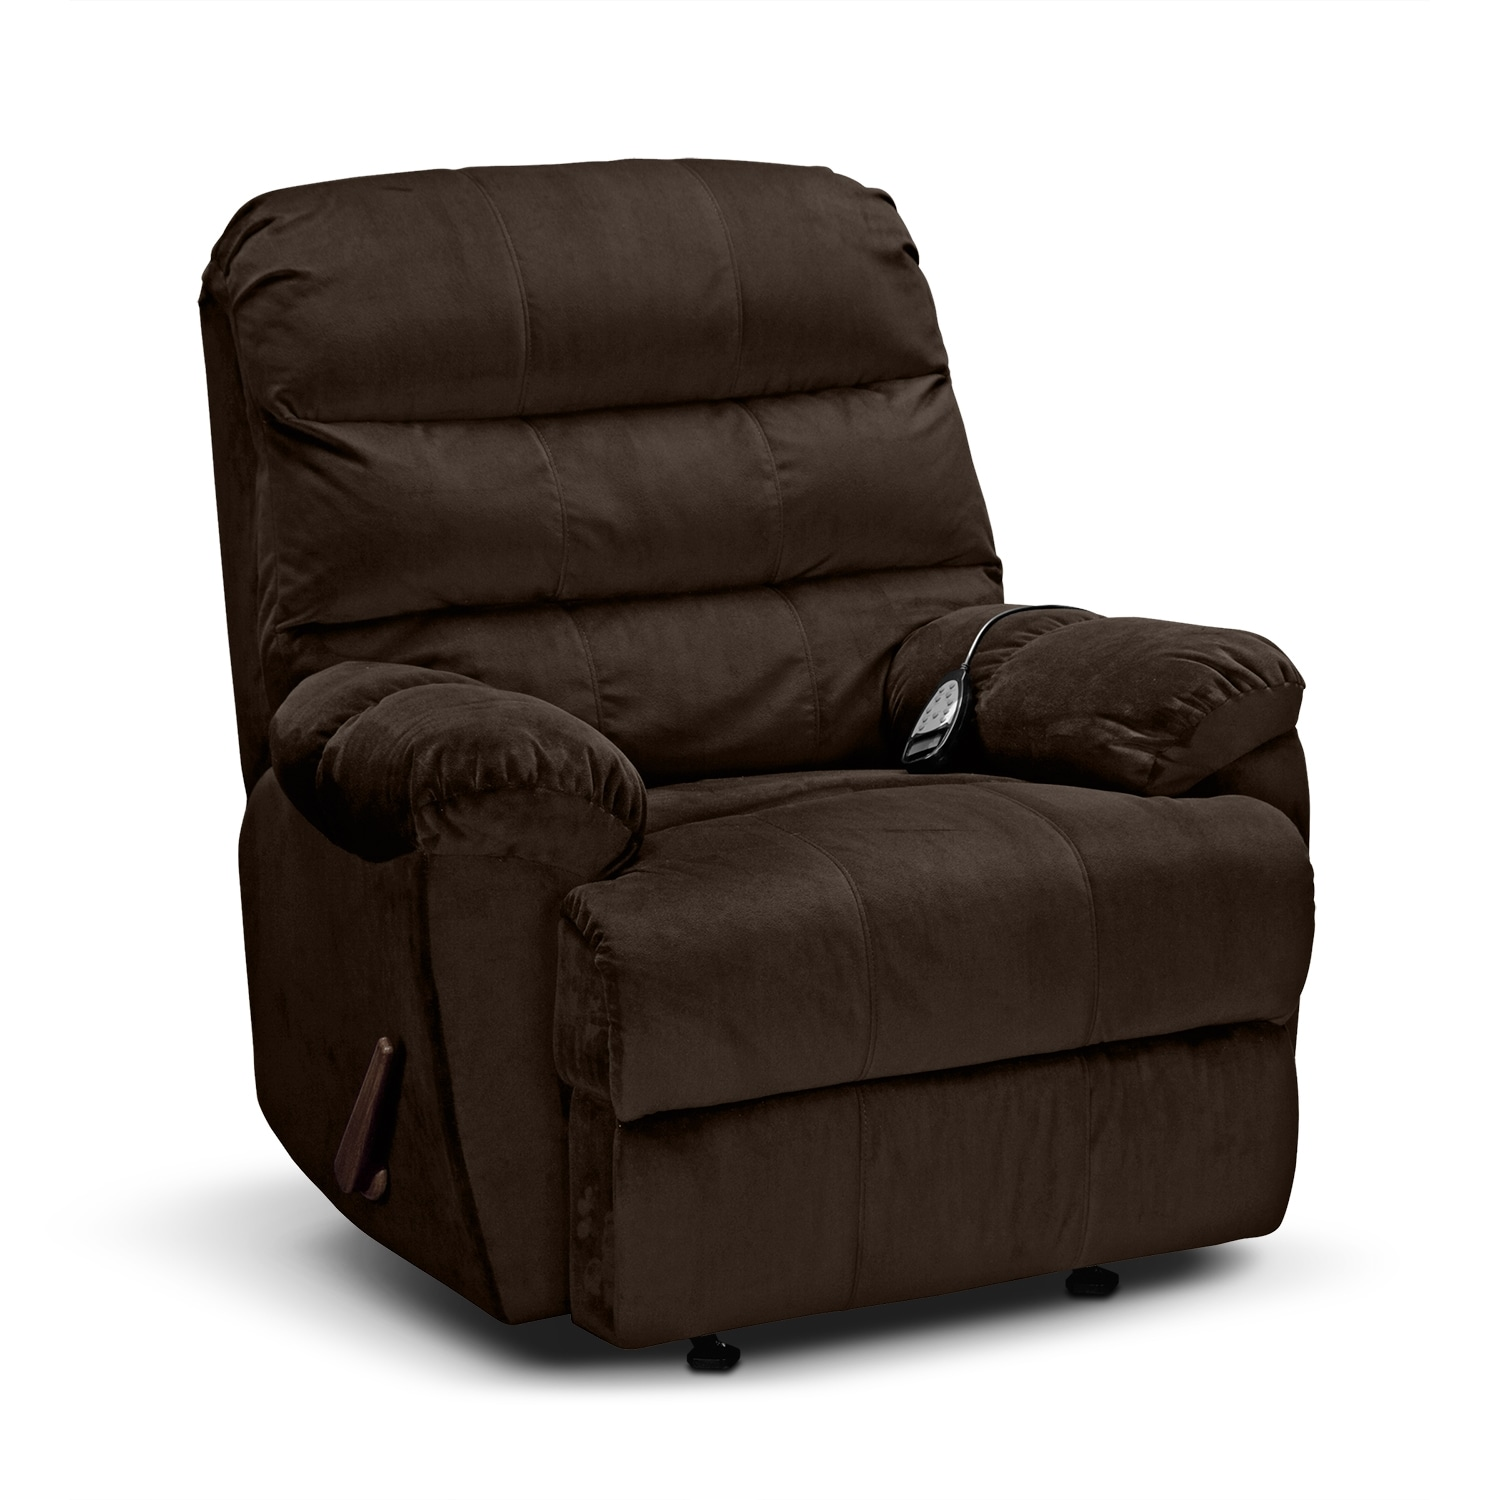 Living Room Furniture - Atlantic Massage Rocker Recliner